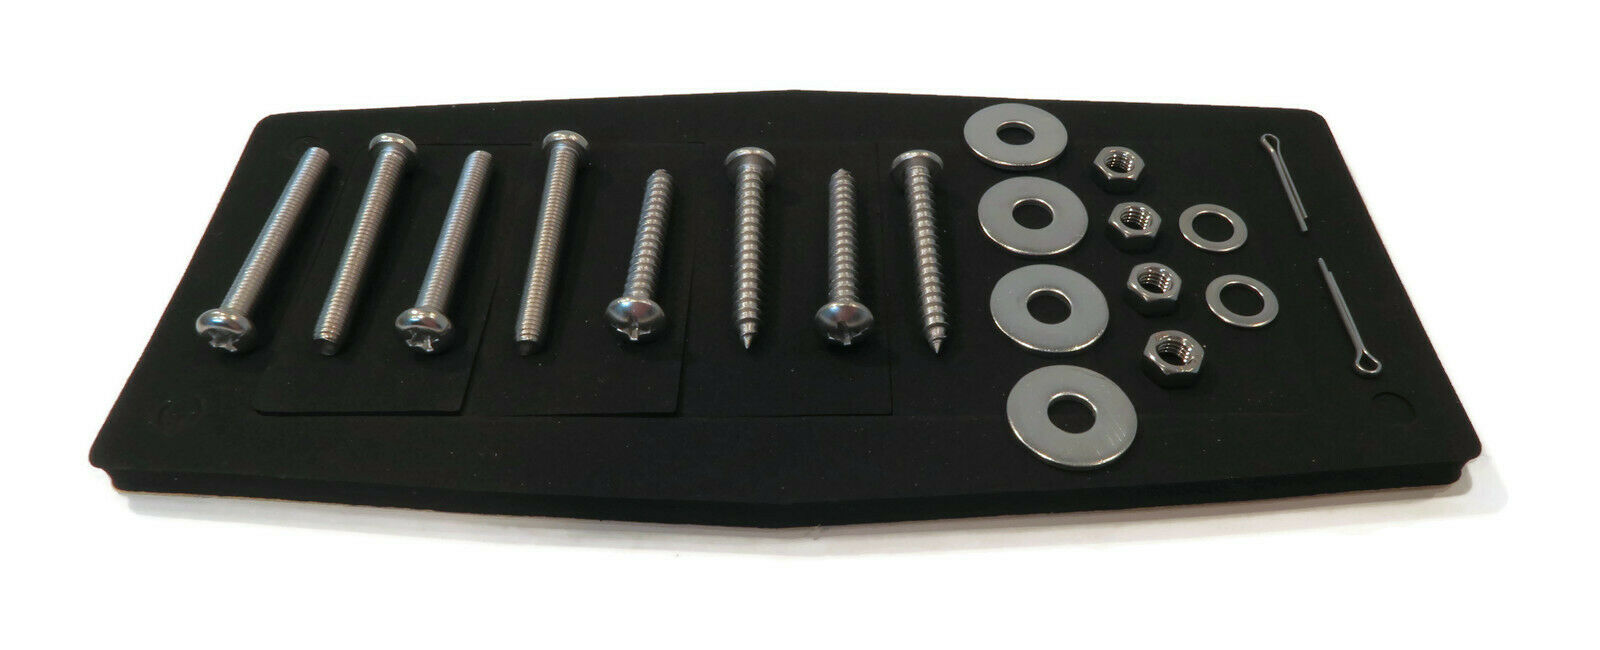 The ROP Shop Remote Control for 1996-2012 Evinrude Outboard Single Lever Binnacle Boat Engine